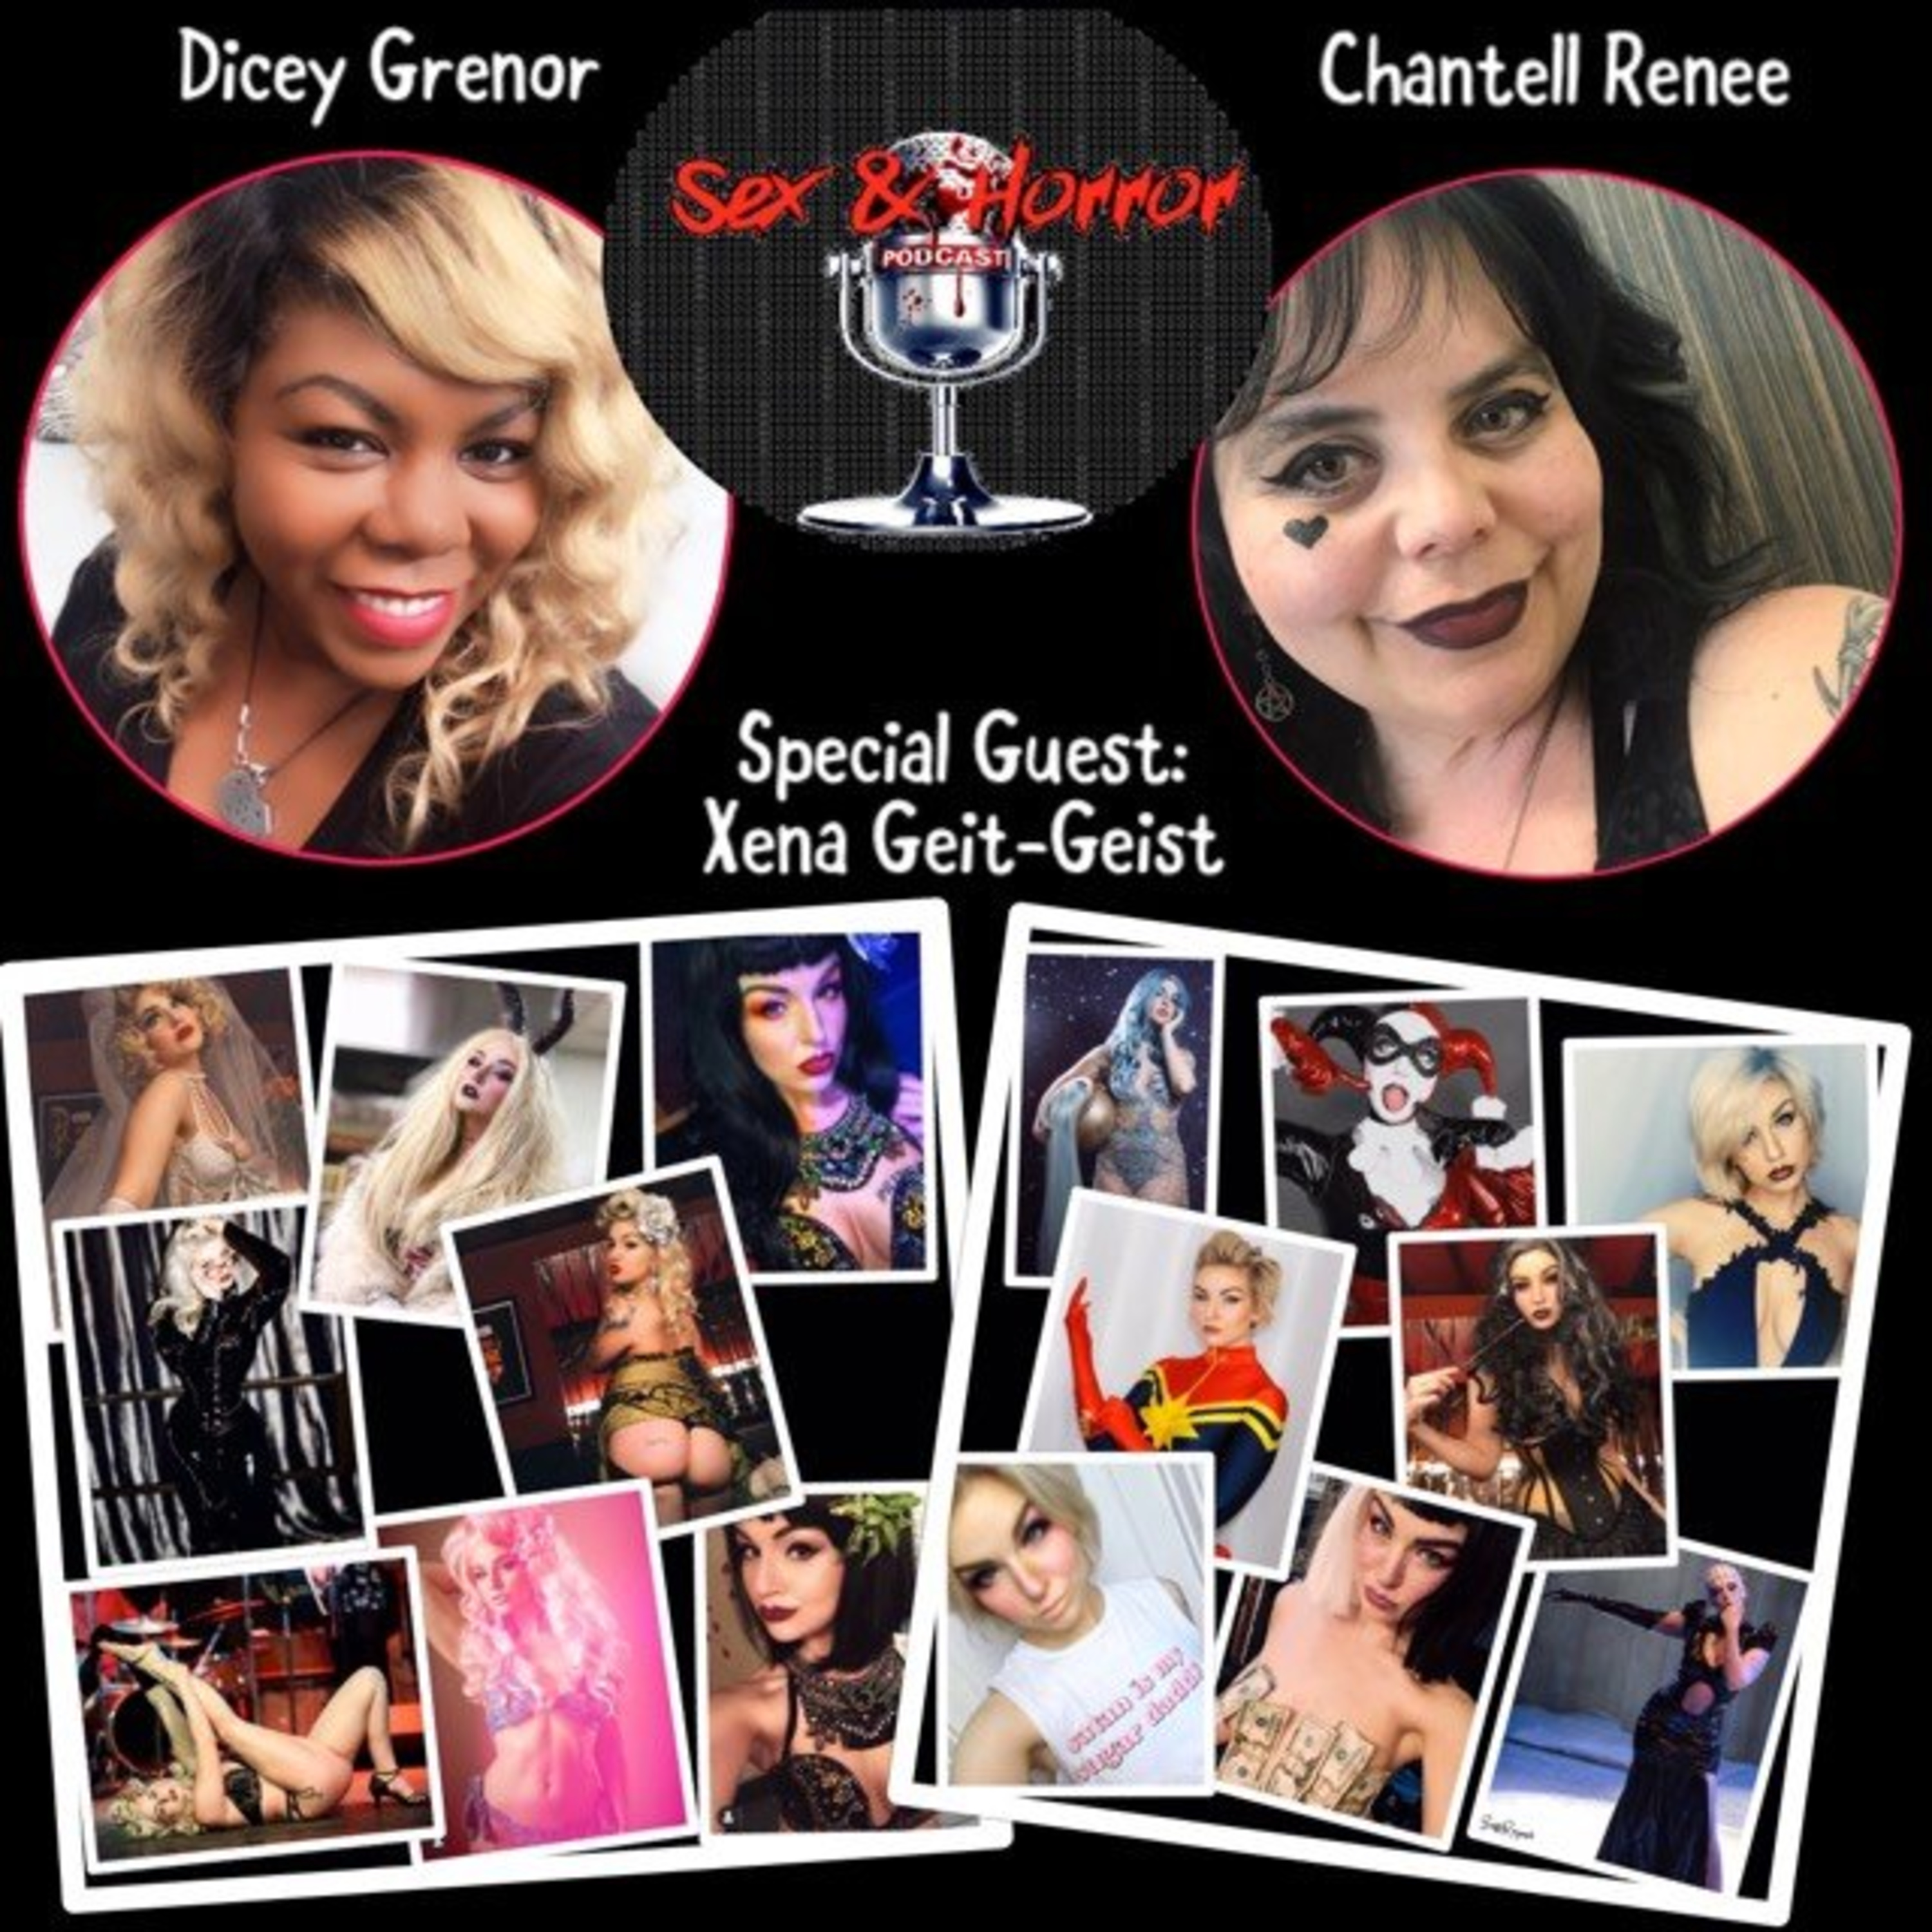 Sex and Horror with Dicey Grenor and Chantell Renee.